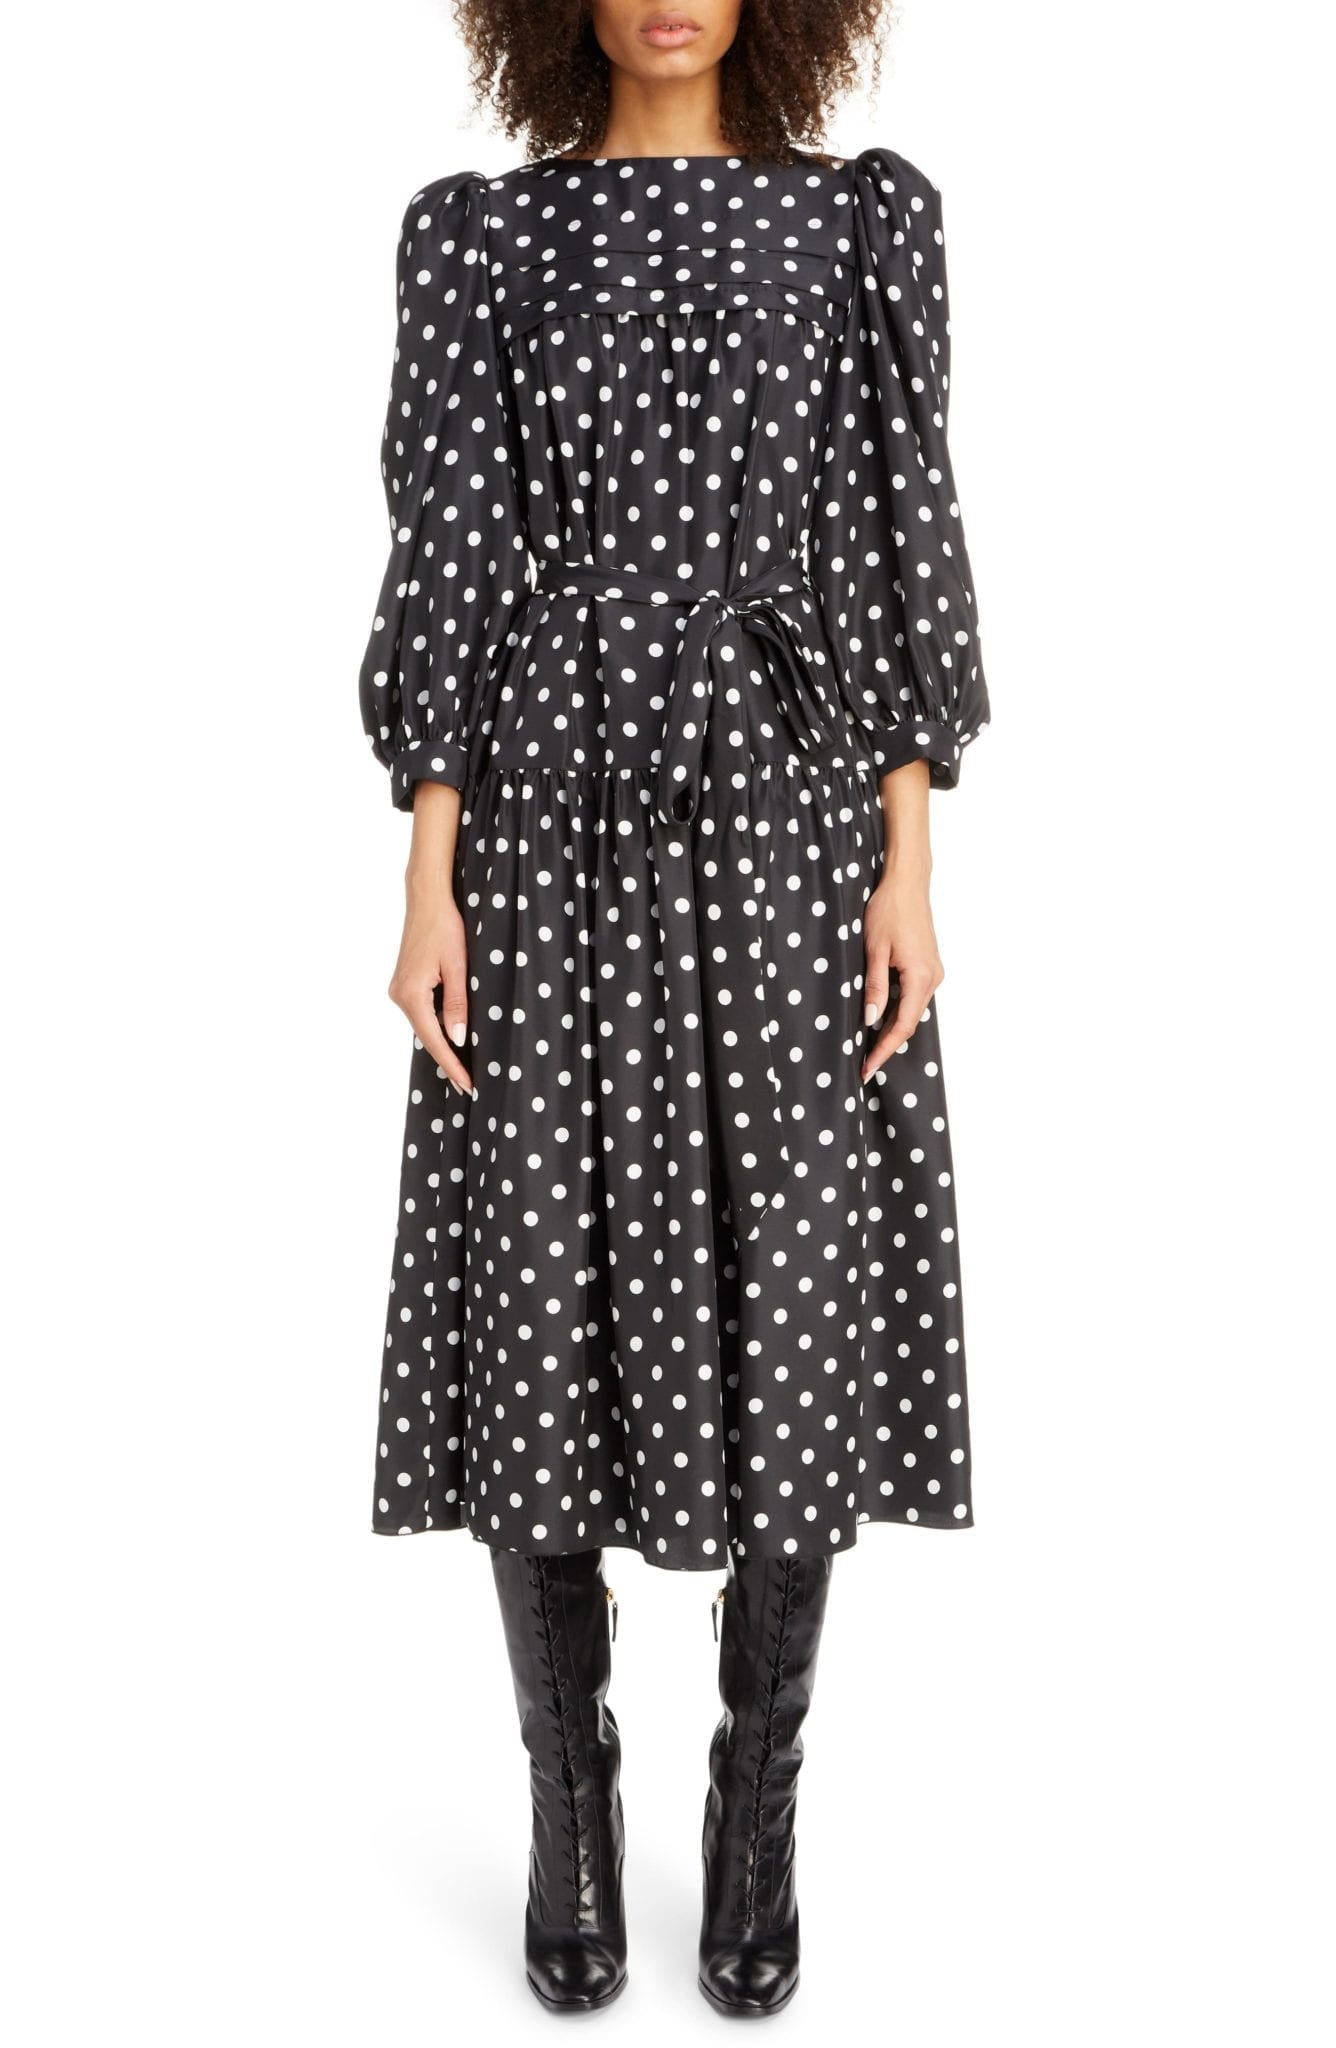 MARC JACOBS Polka Dot Print Silk Midi Dress